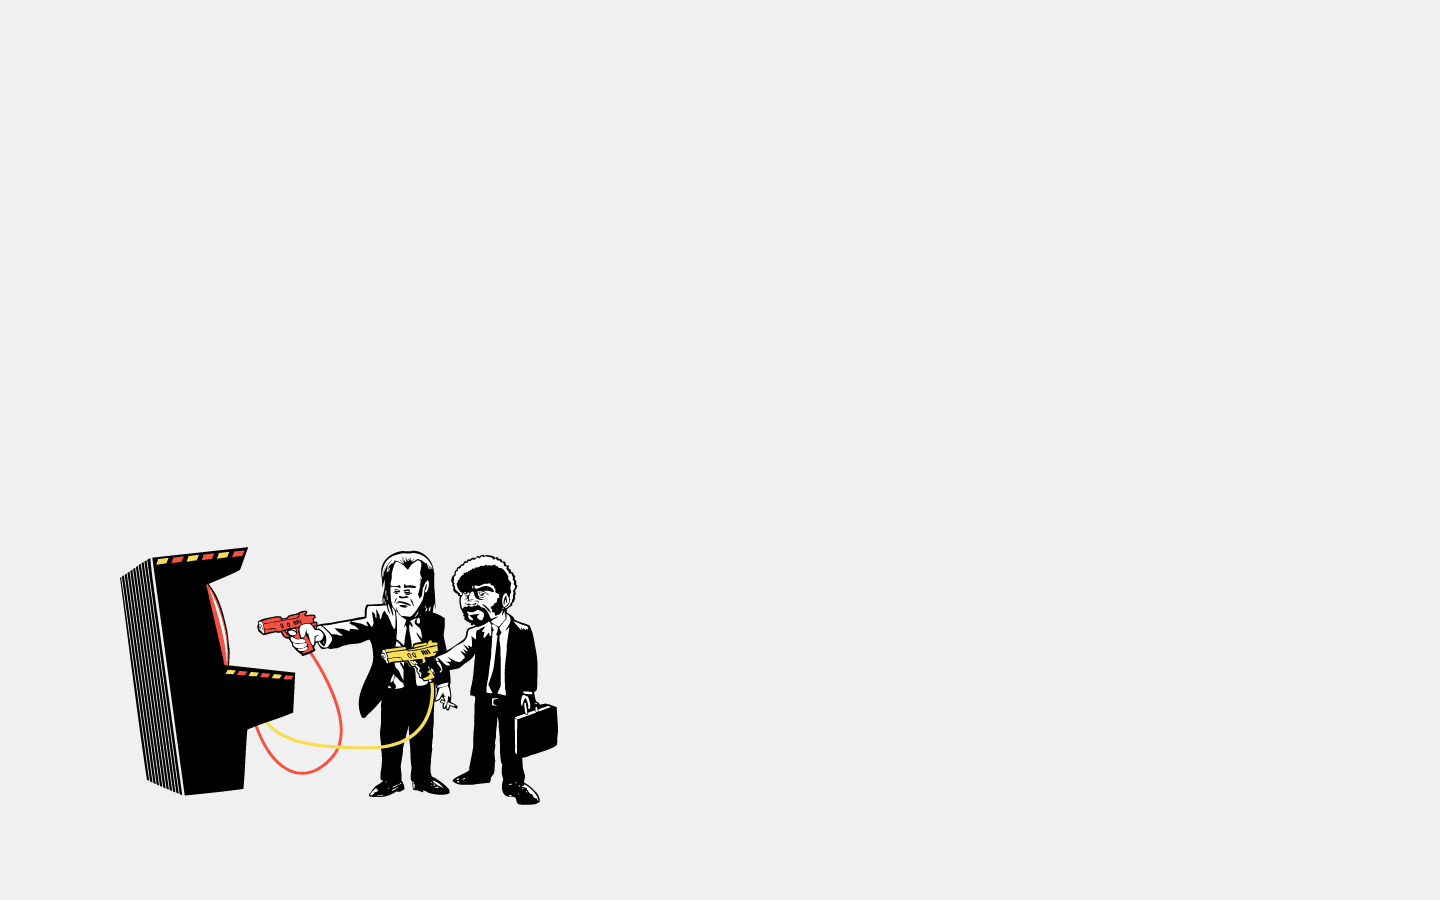 pulp fiction banksy alternative HD Wallpaper